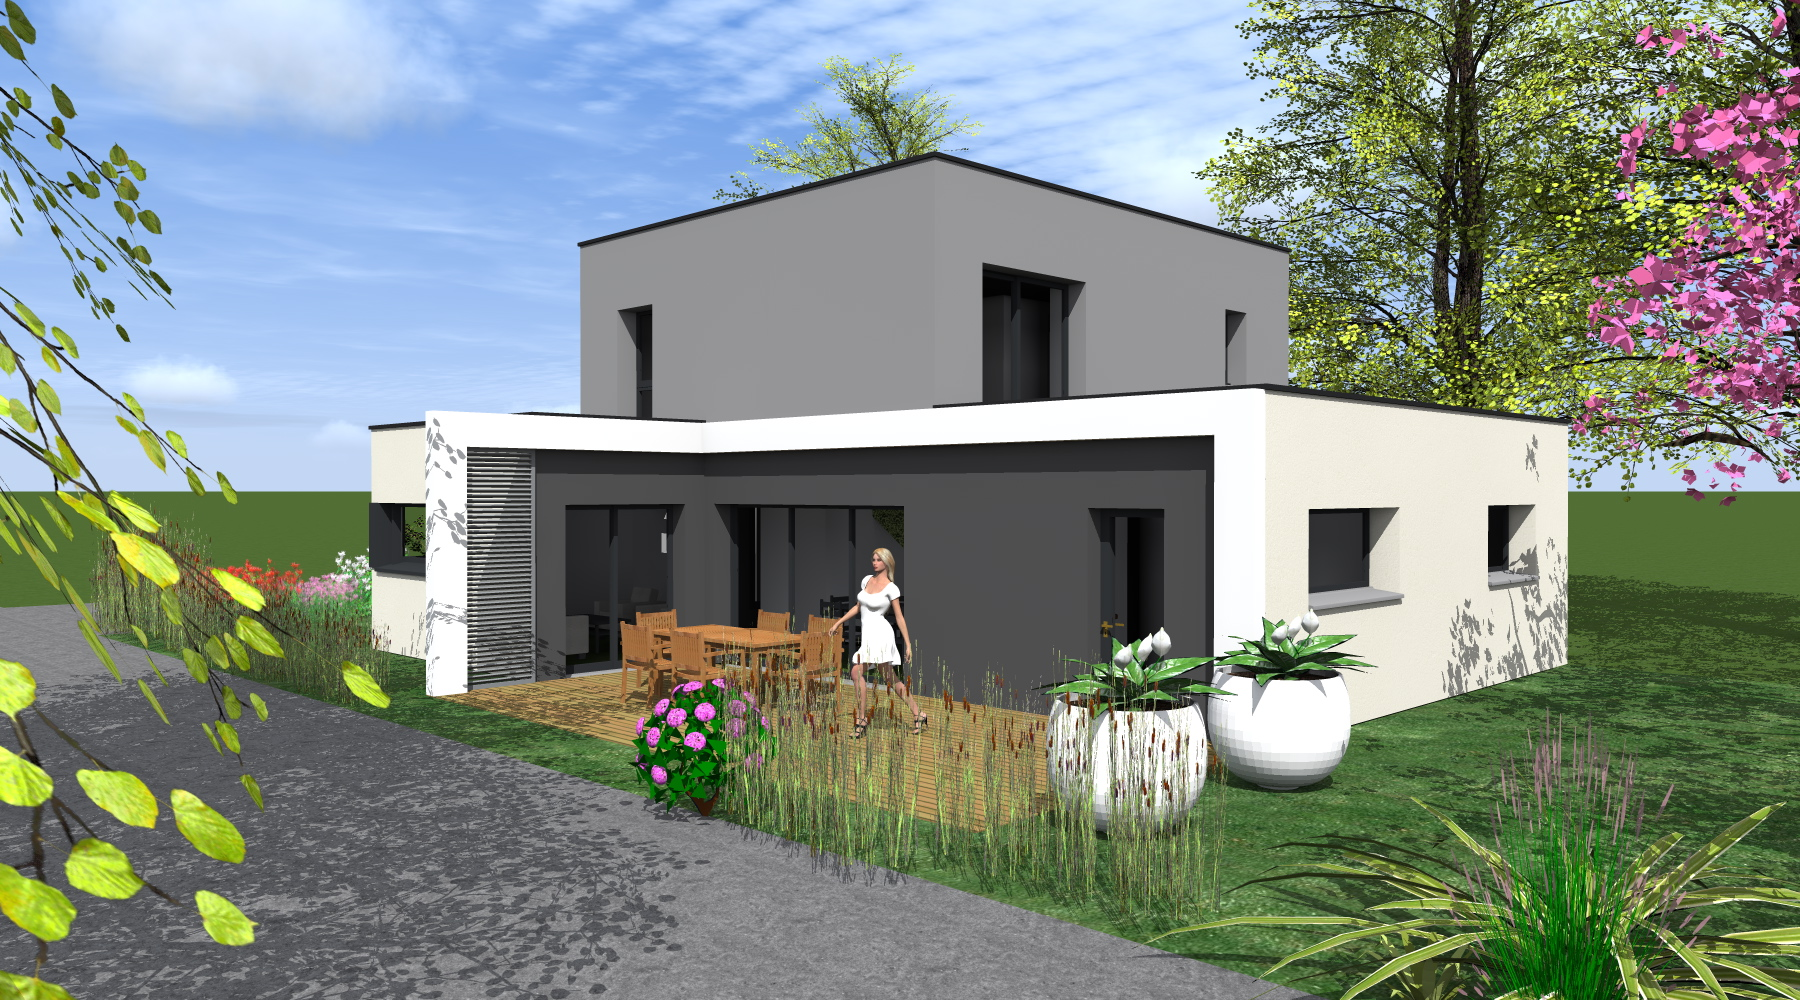 Maison contemporaine 1 2 vue architecte lise roturier rennes for Realisation toit plat